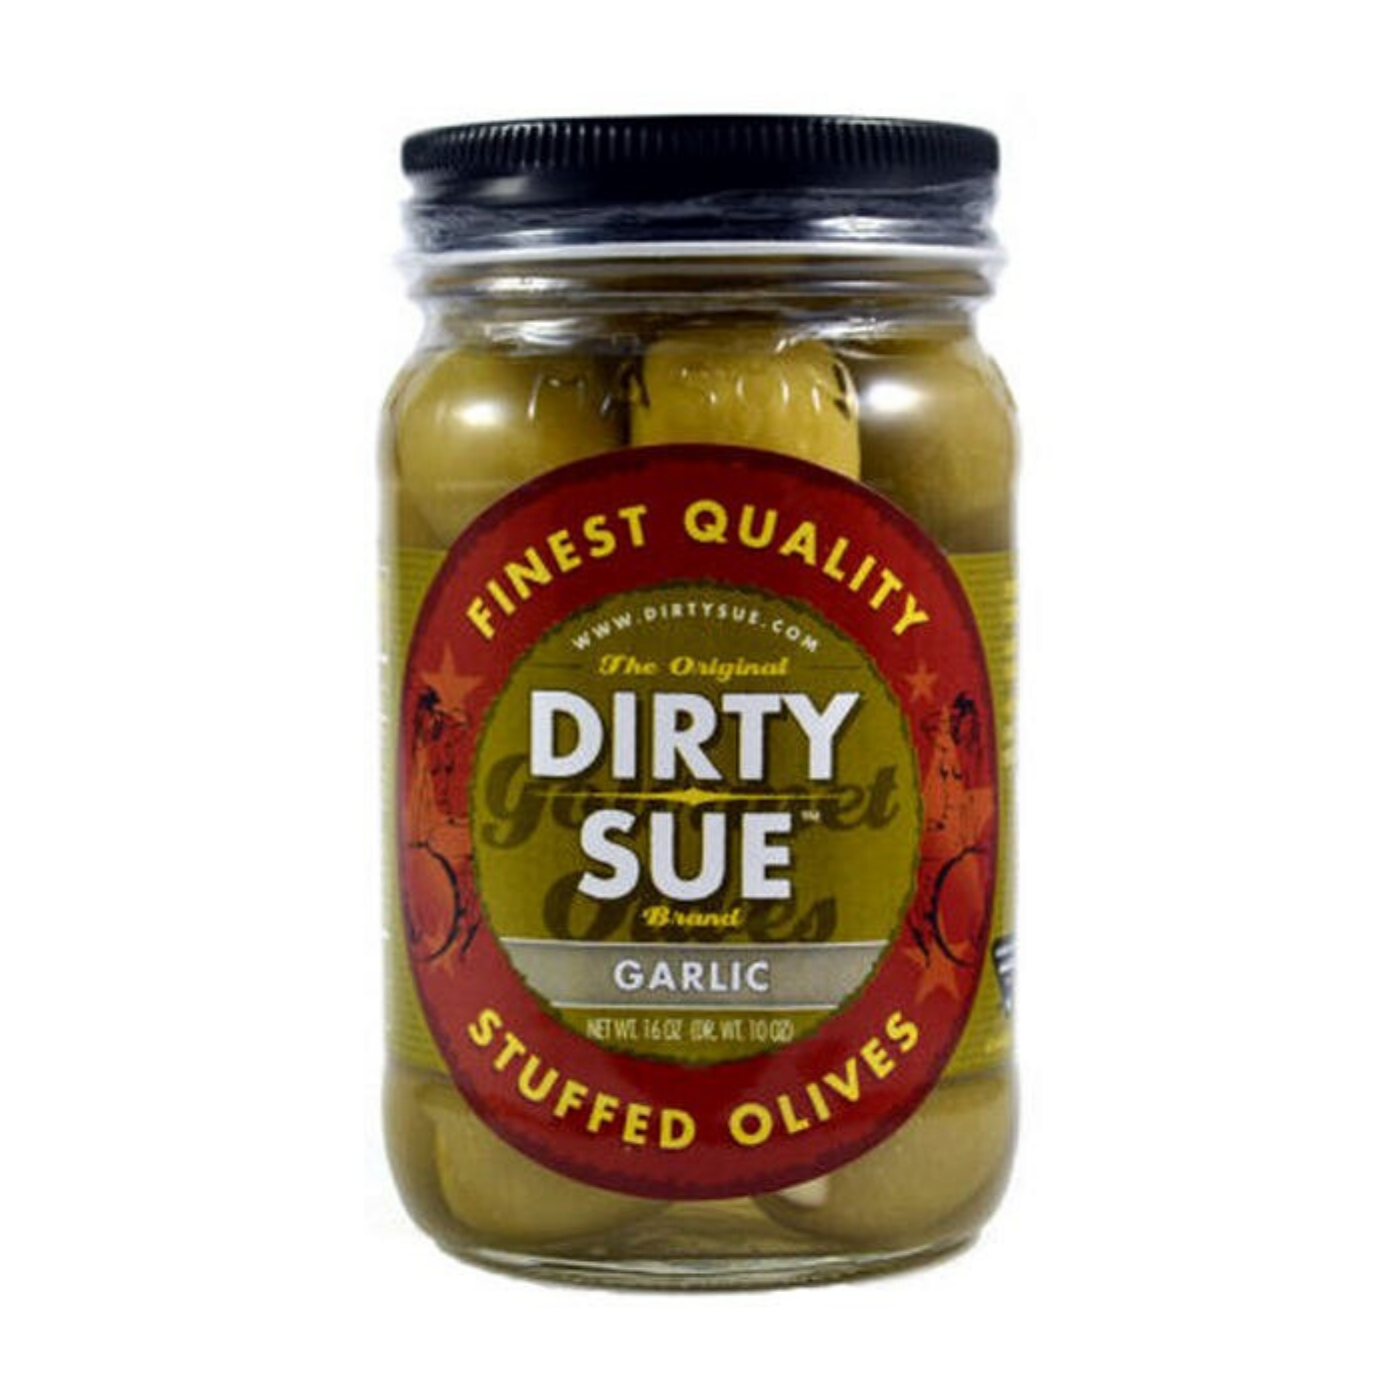 Dirty Sue Garlic Stuffed Olives